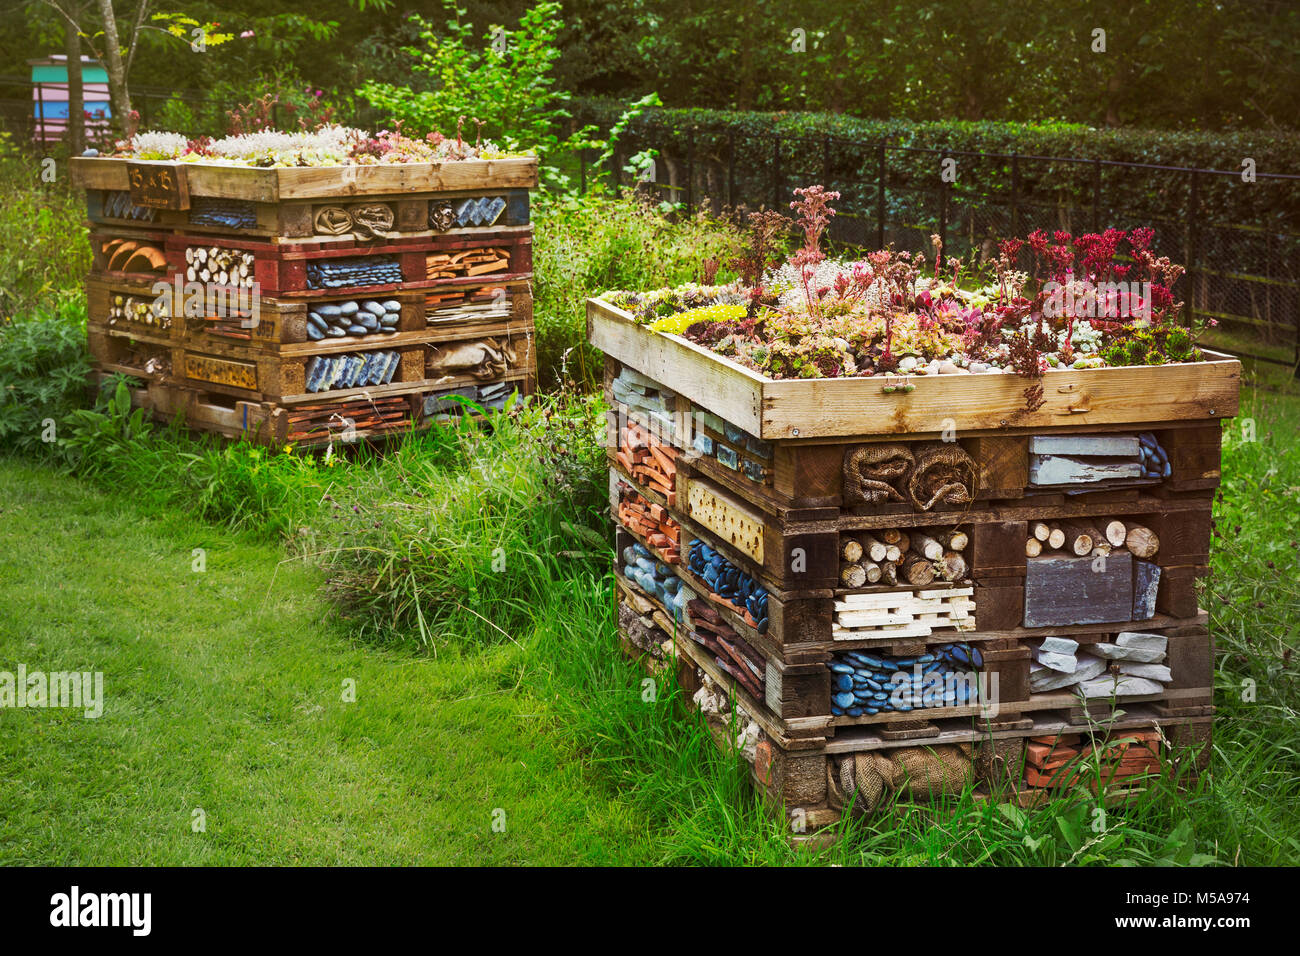 Two large bug houses with several layers of different materials in a garden. - Stock Image